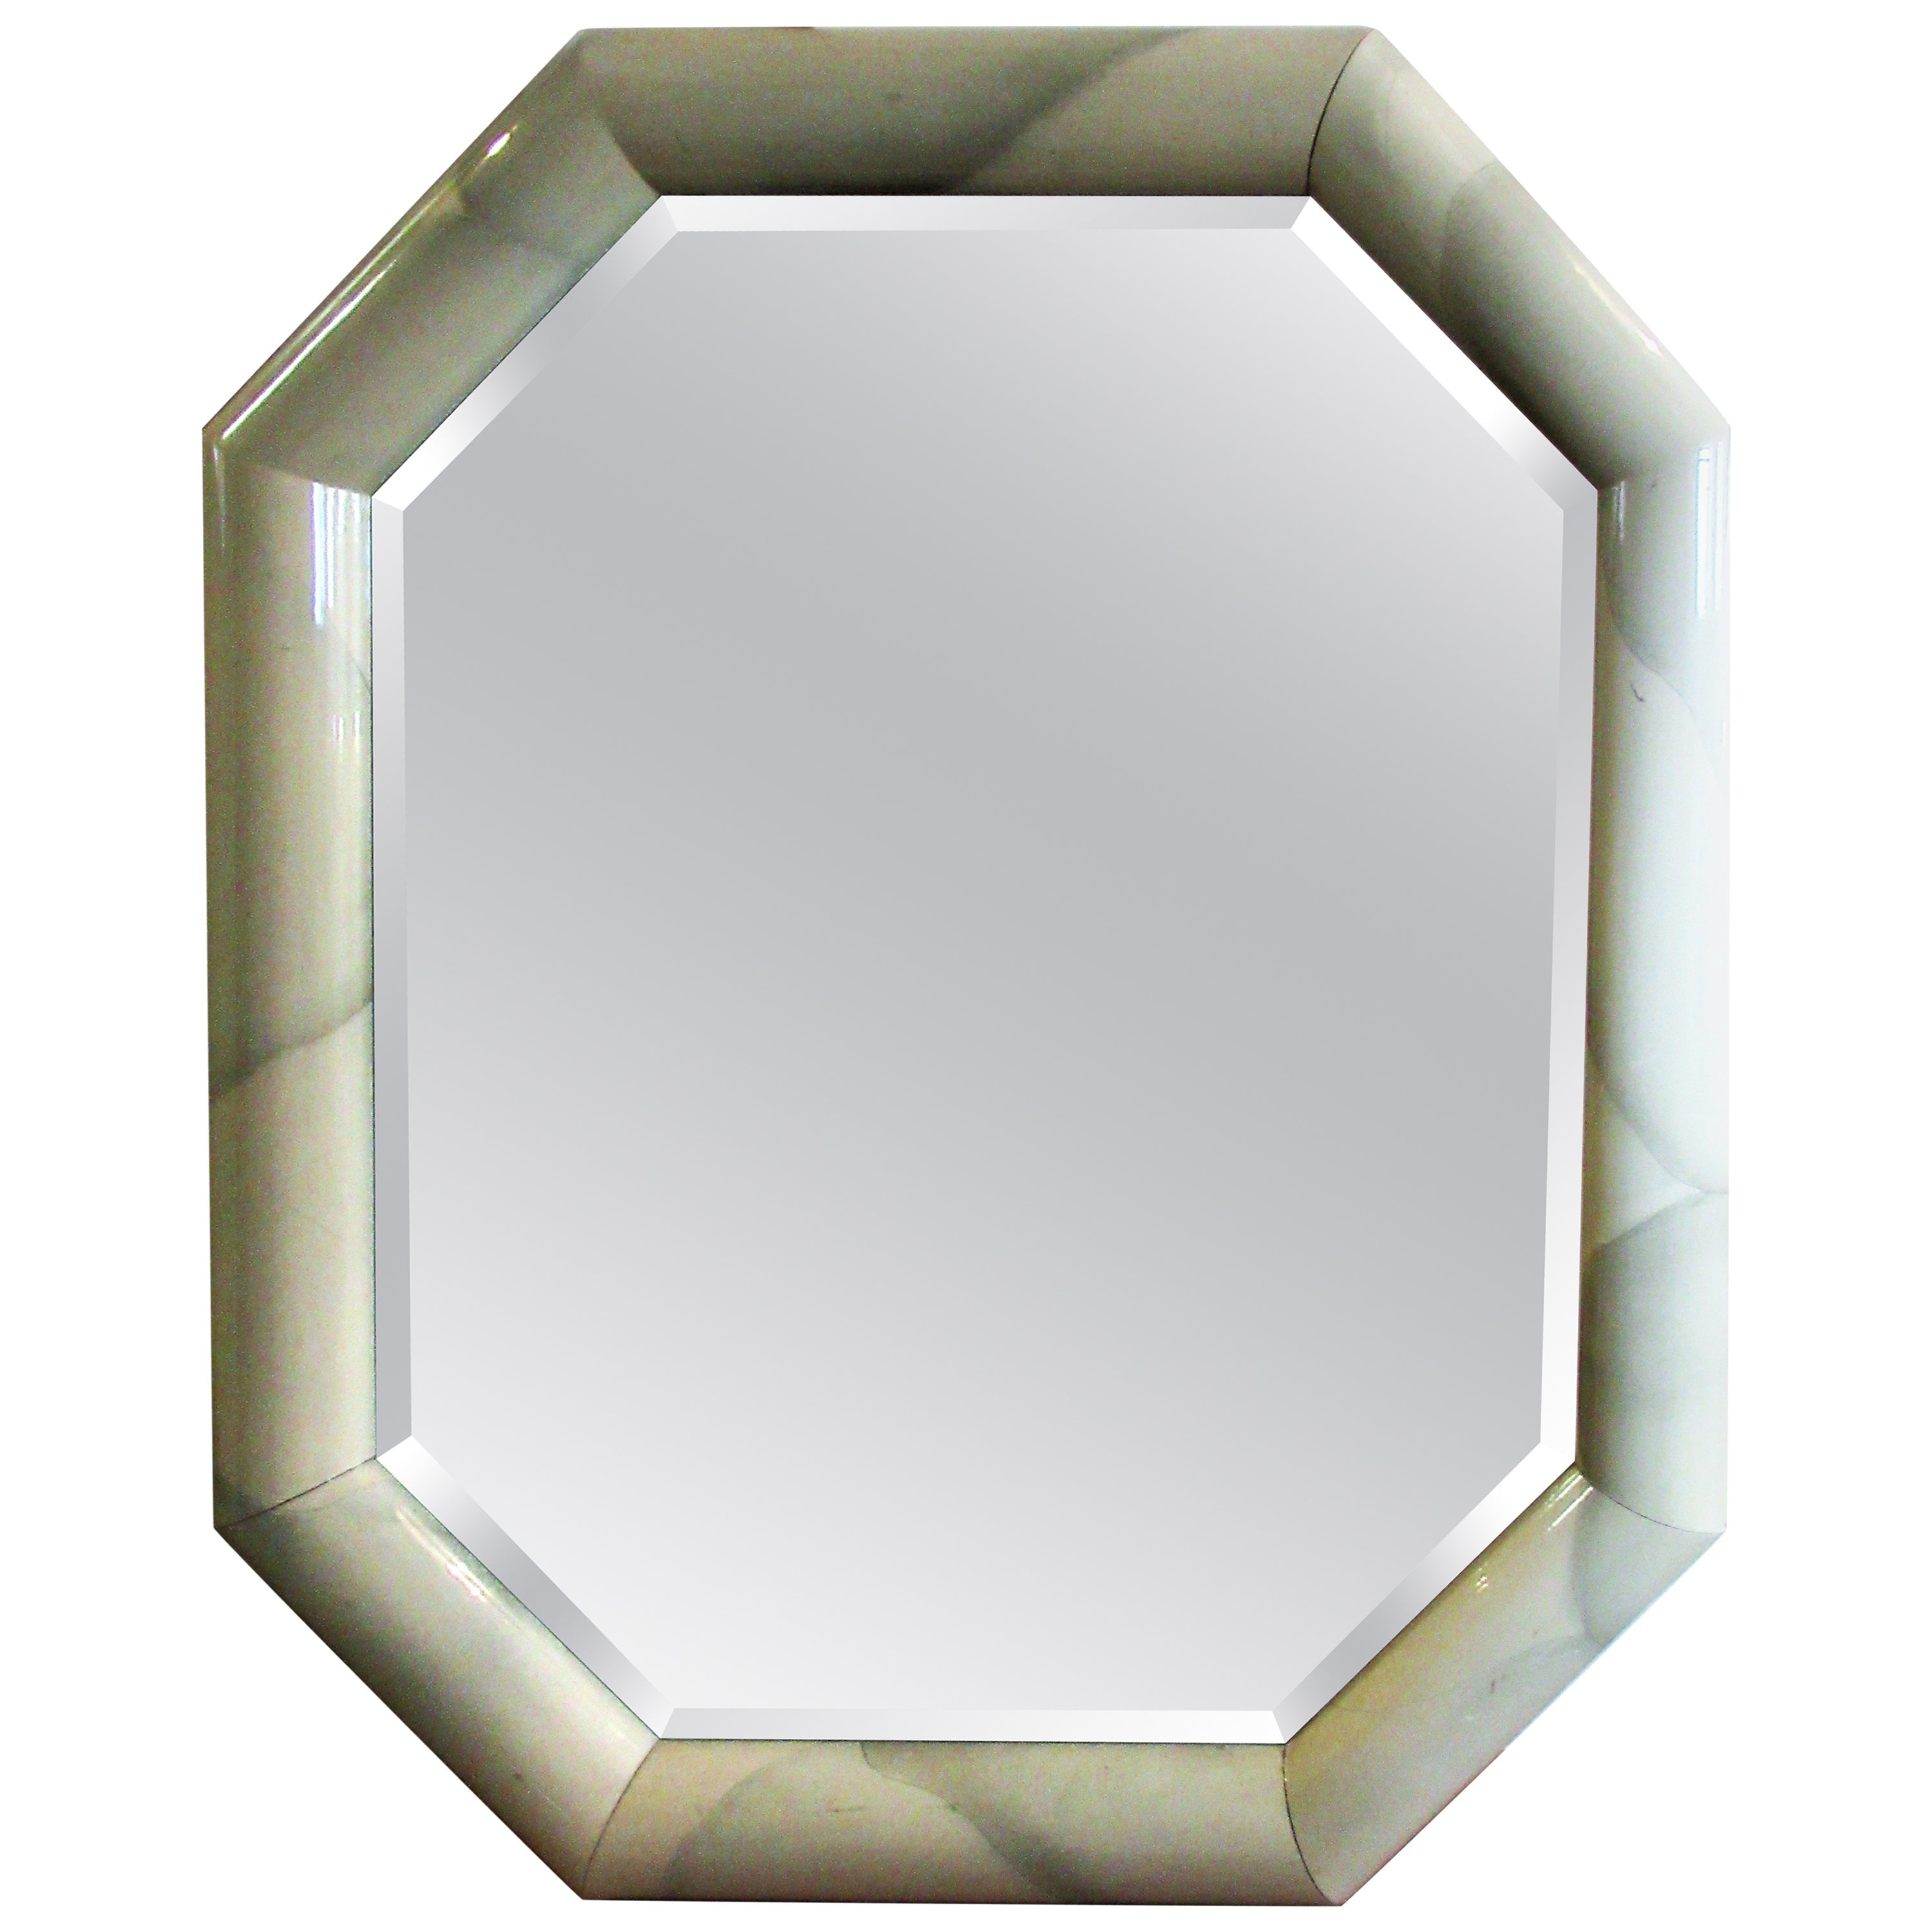 Large Lacquered Octagonal Mirror in the style of Karl Springer